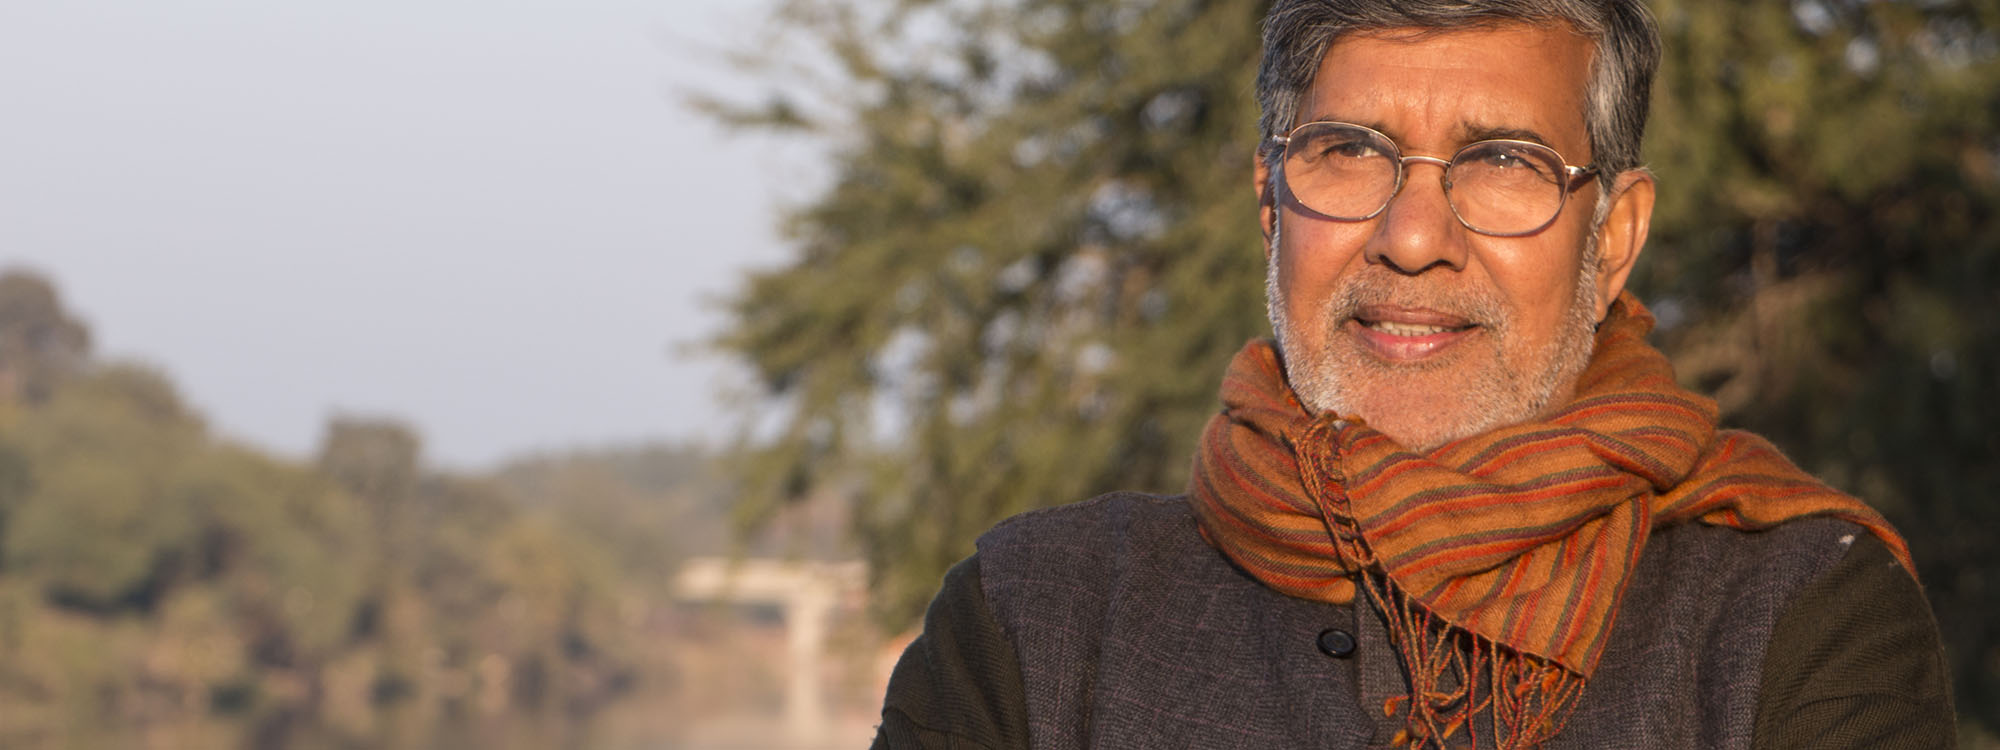 Kailash Satyarthi: Making Positive Changes in the World